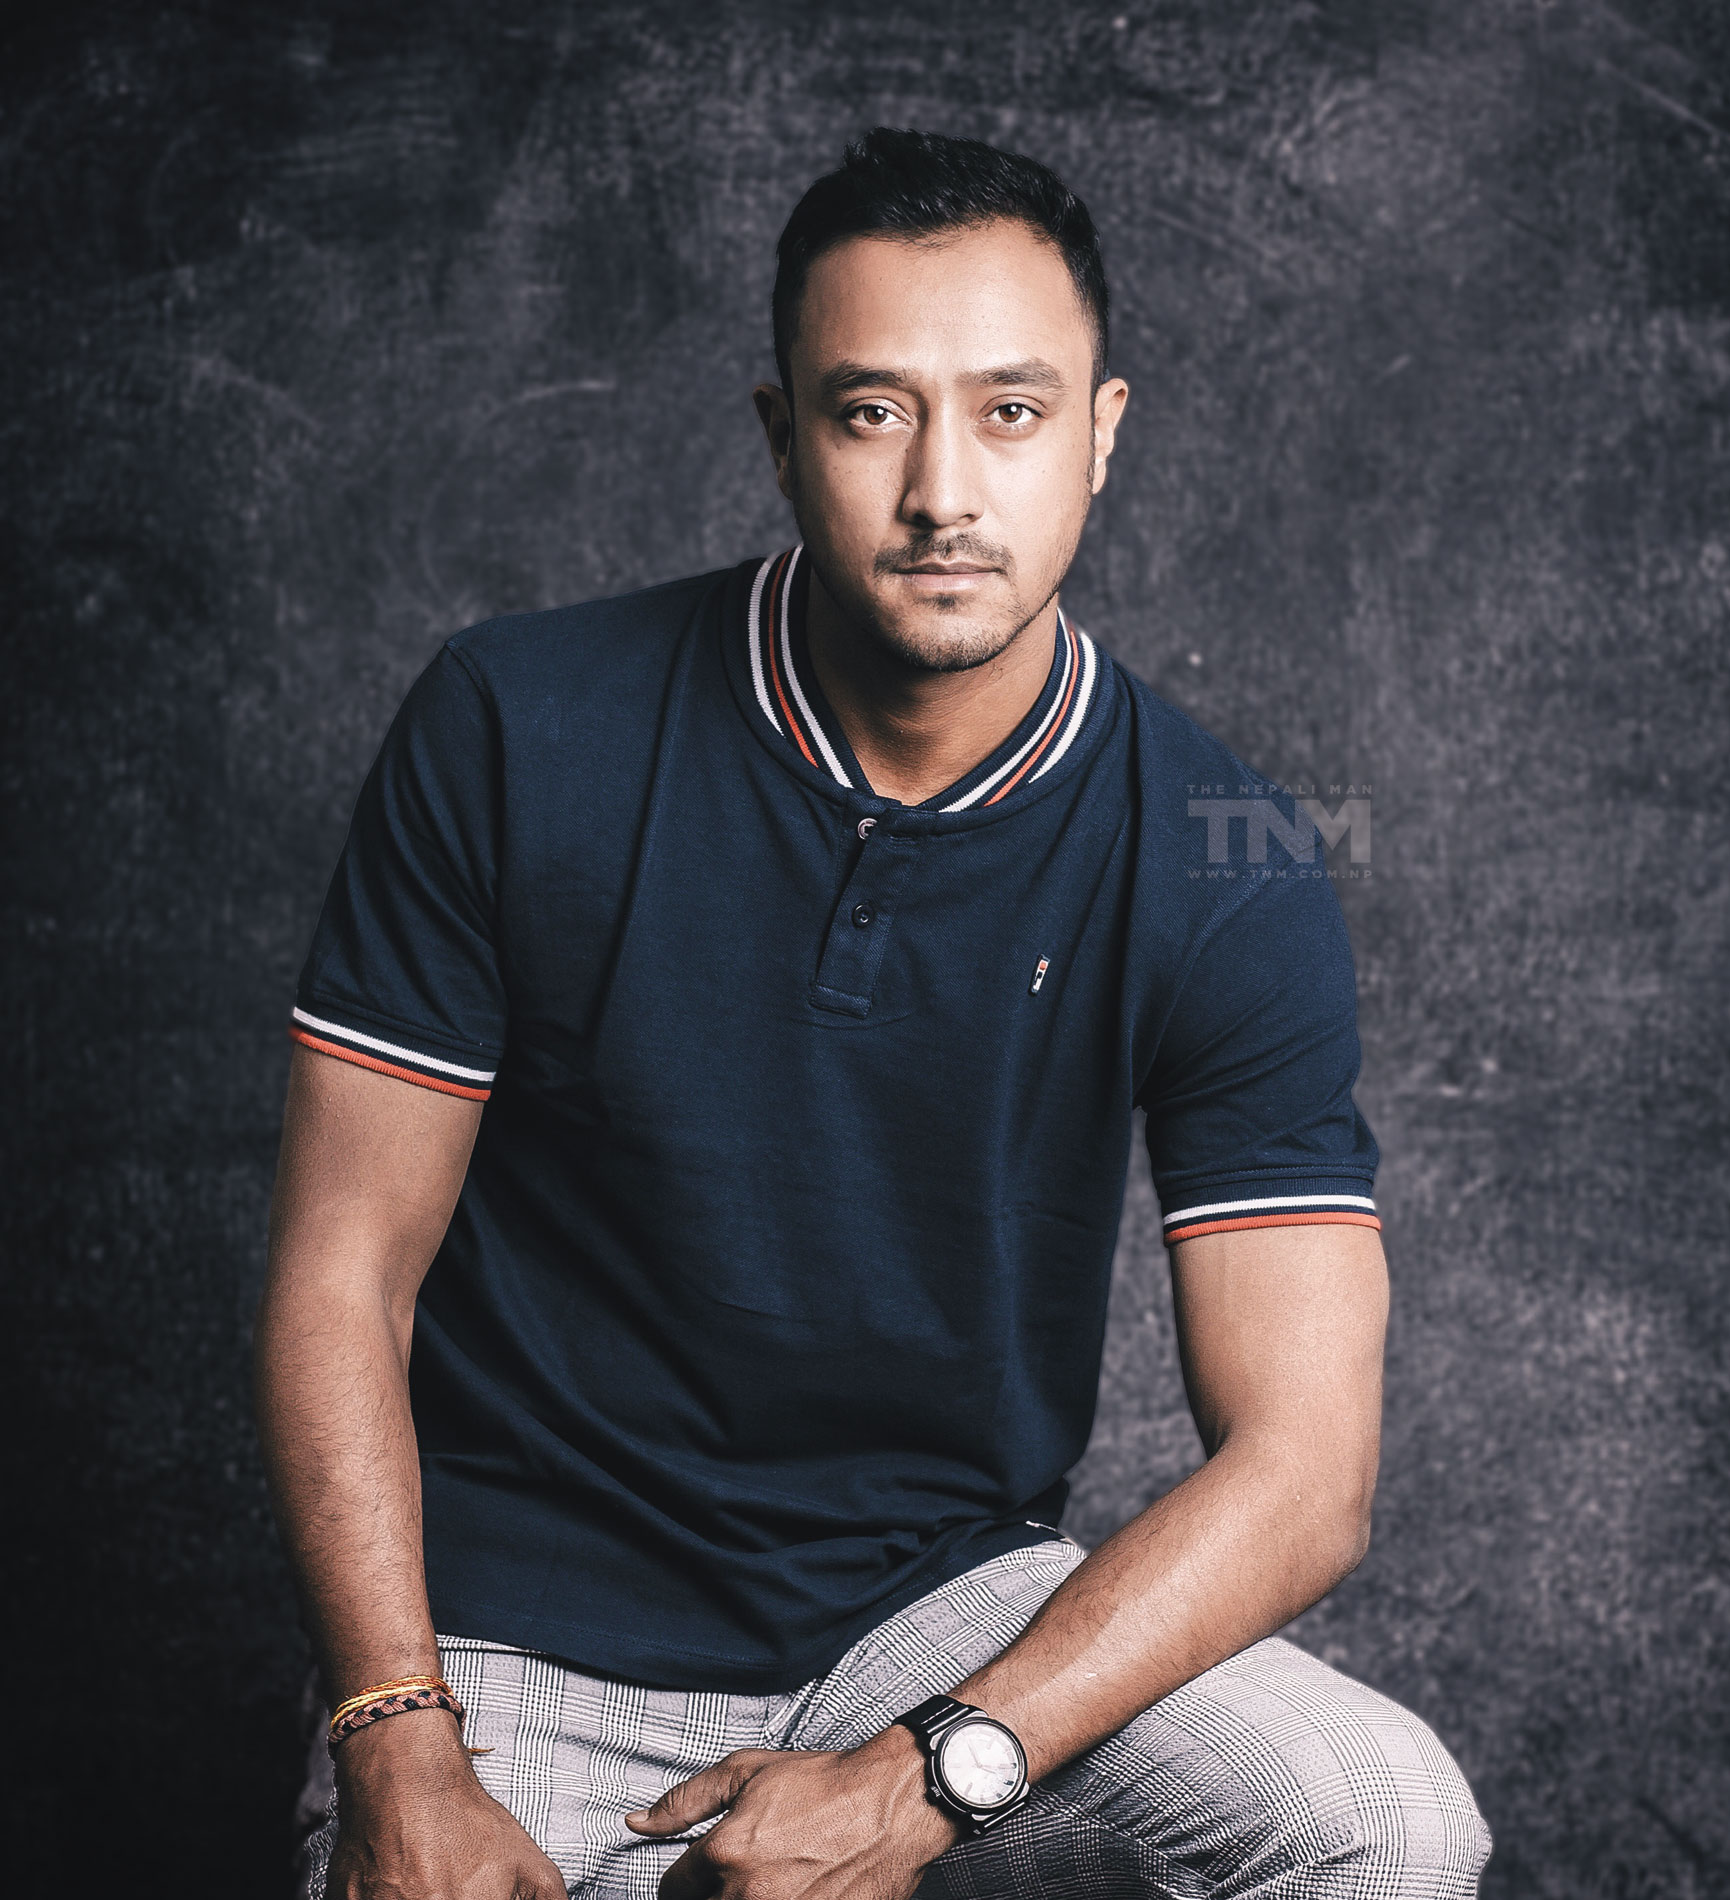 Paras Khadka Captain Of The Nepalese Cricket Team Man With 20 Tendencies Tshirt Great Again Hitam M 6